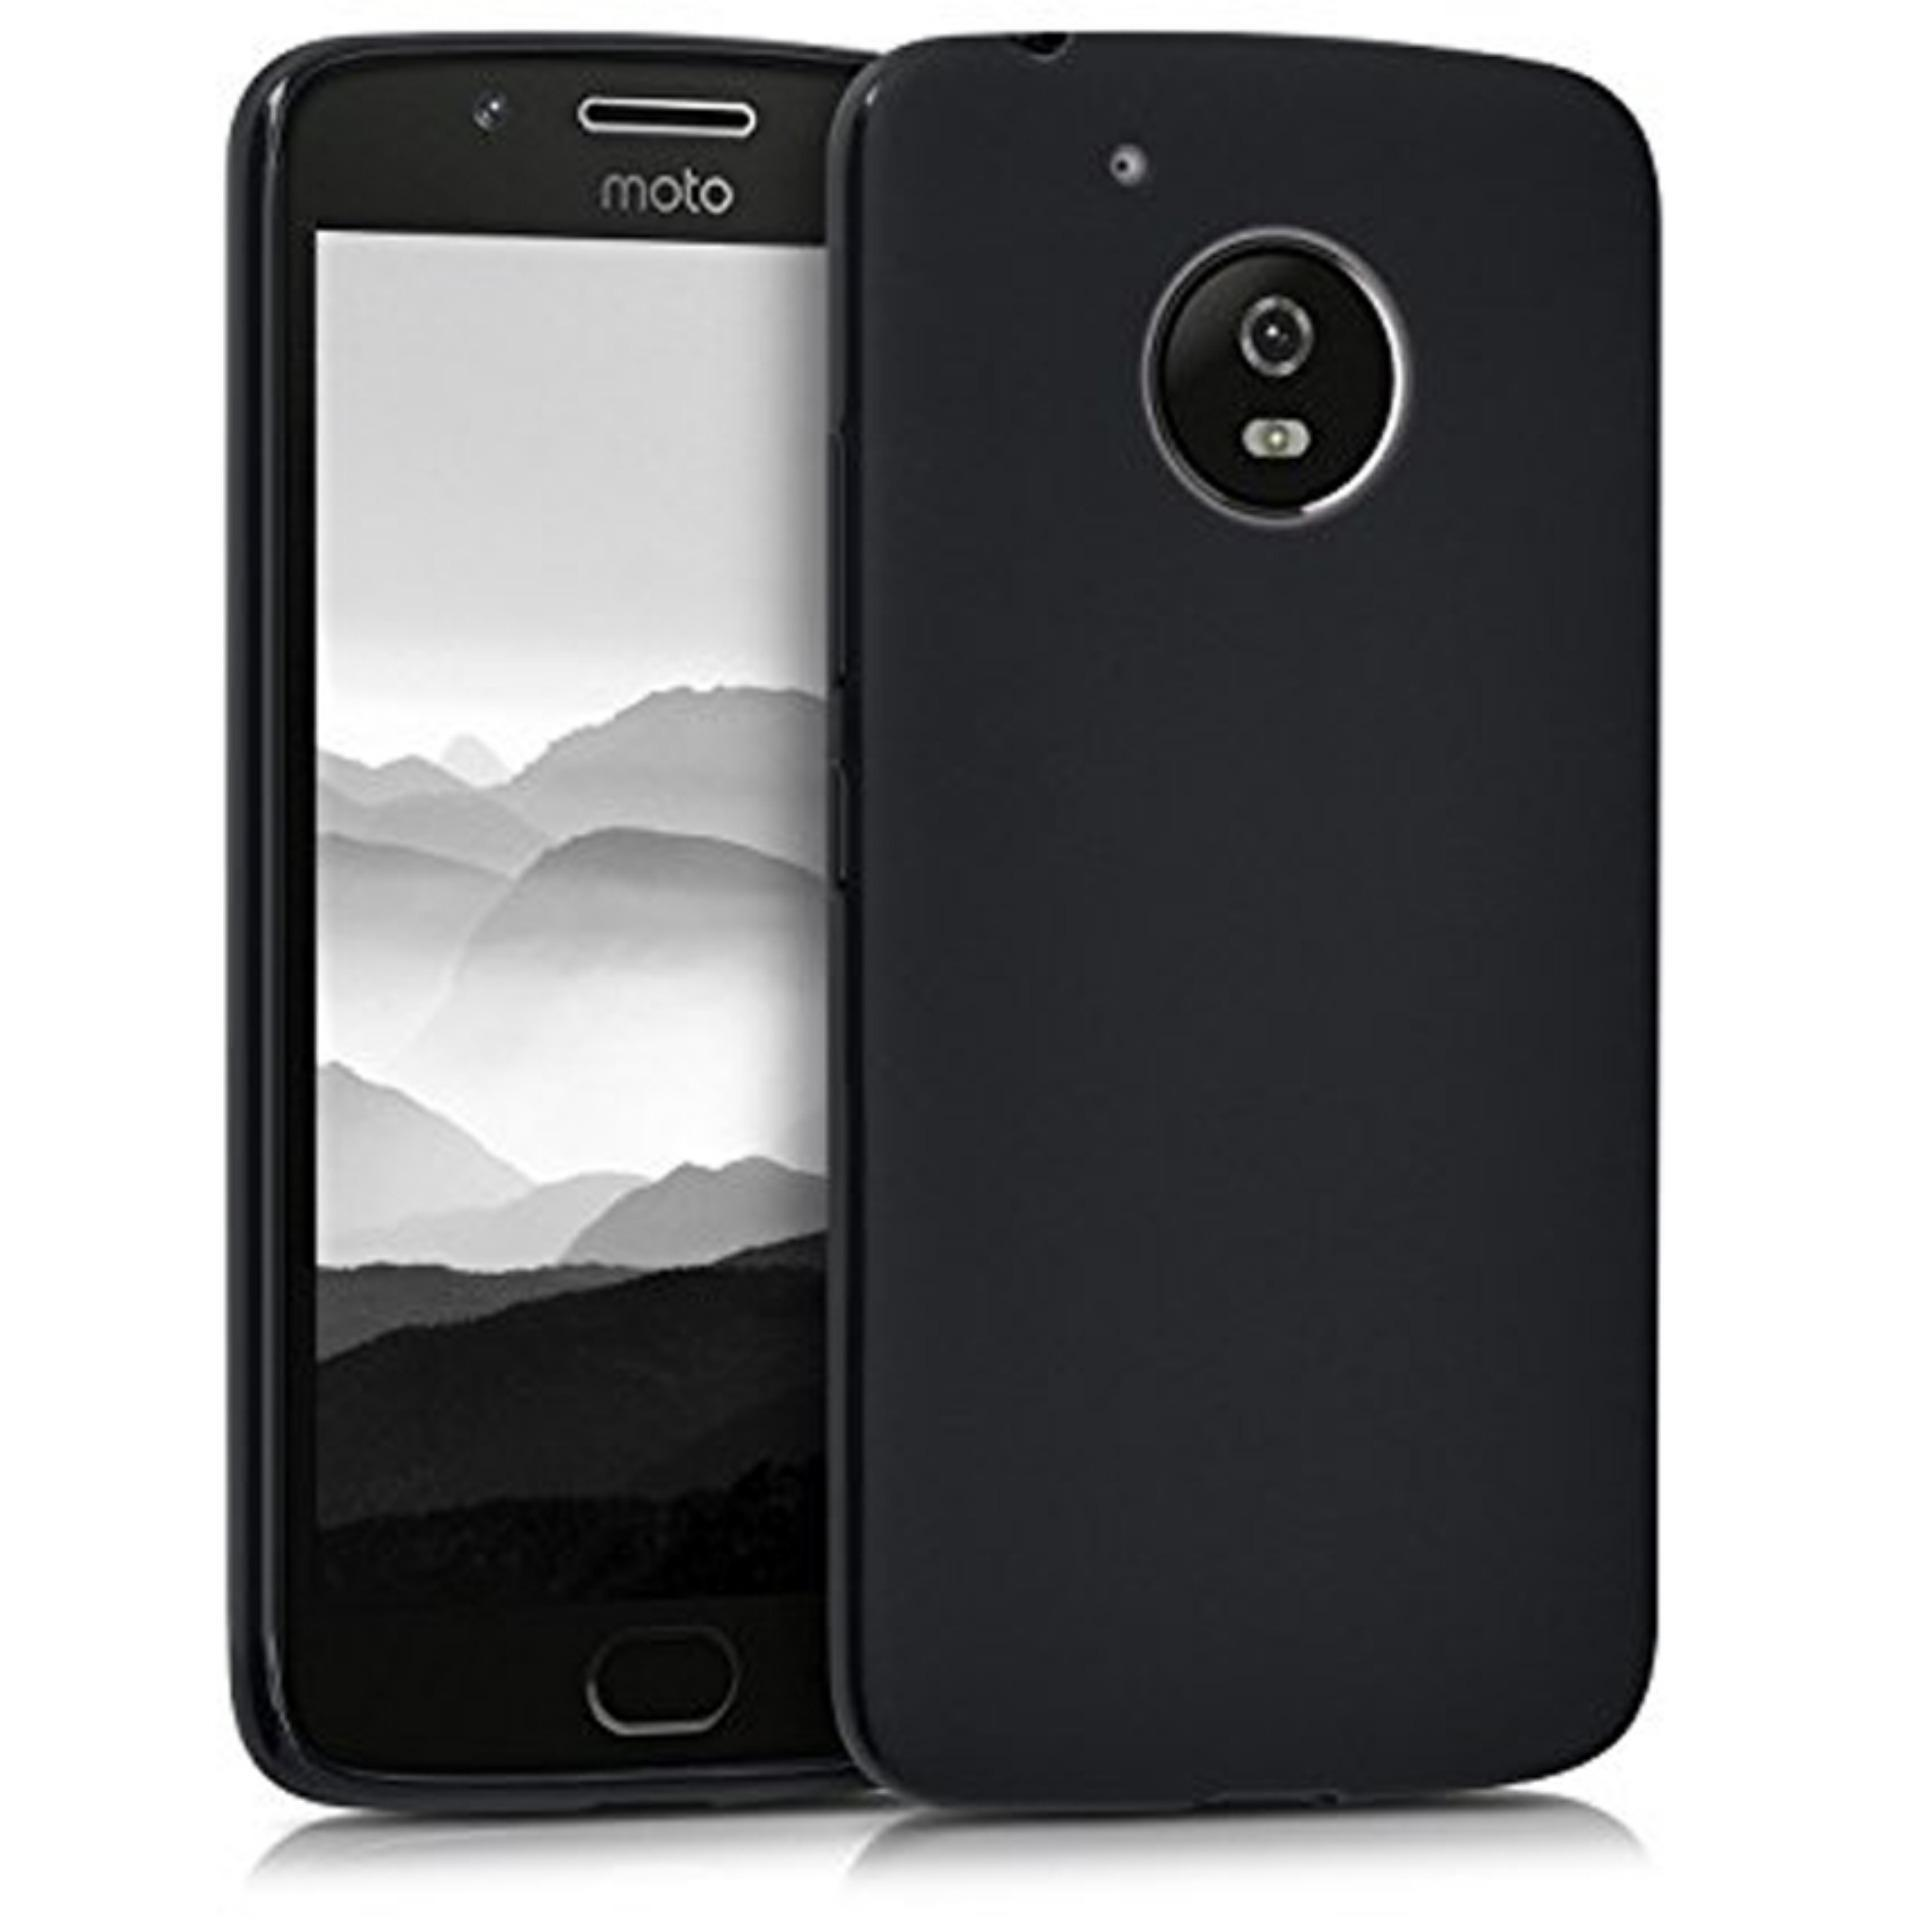 Case Slim Black doff Matte Anti minyak For Motorola Motto E4 Plus - Black Doff